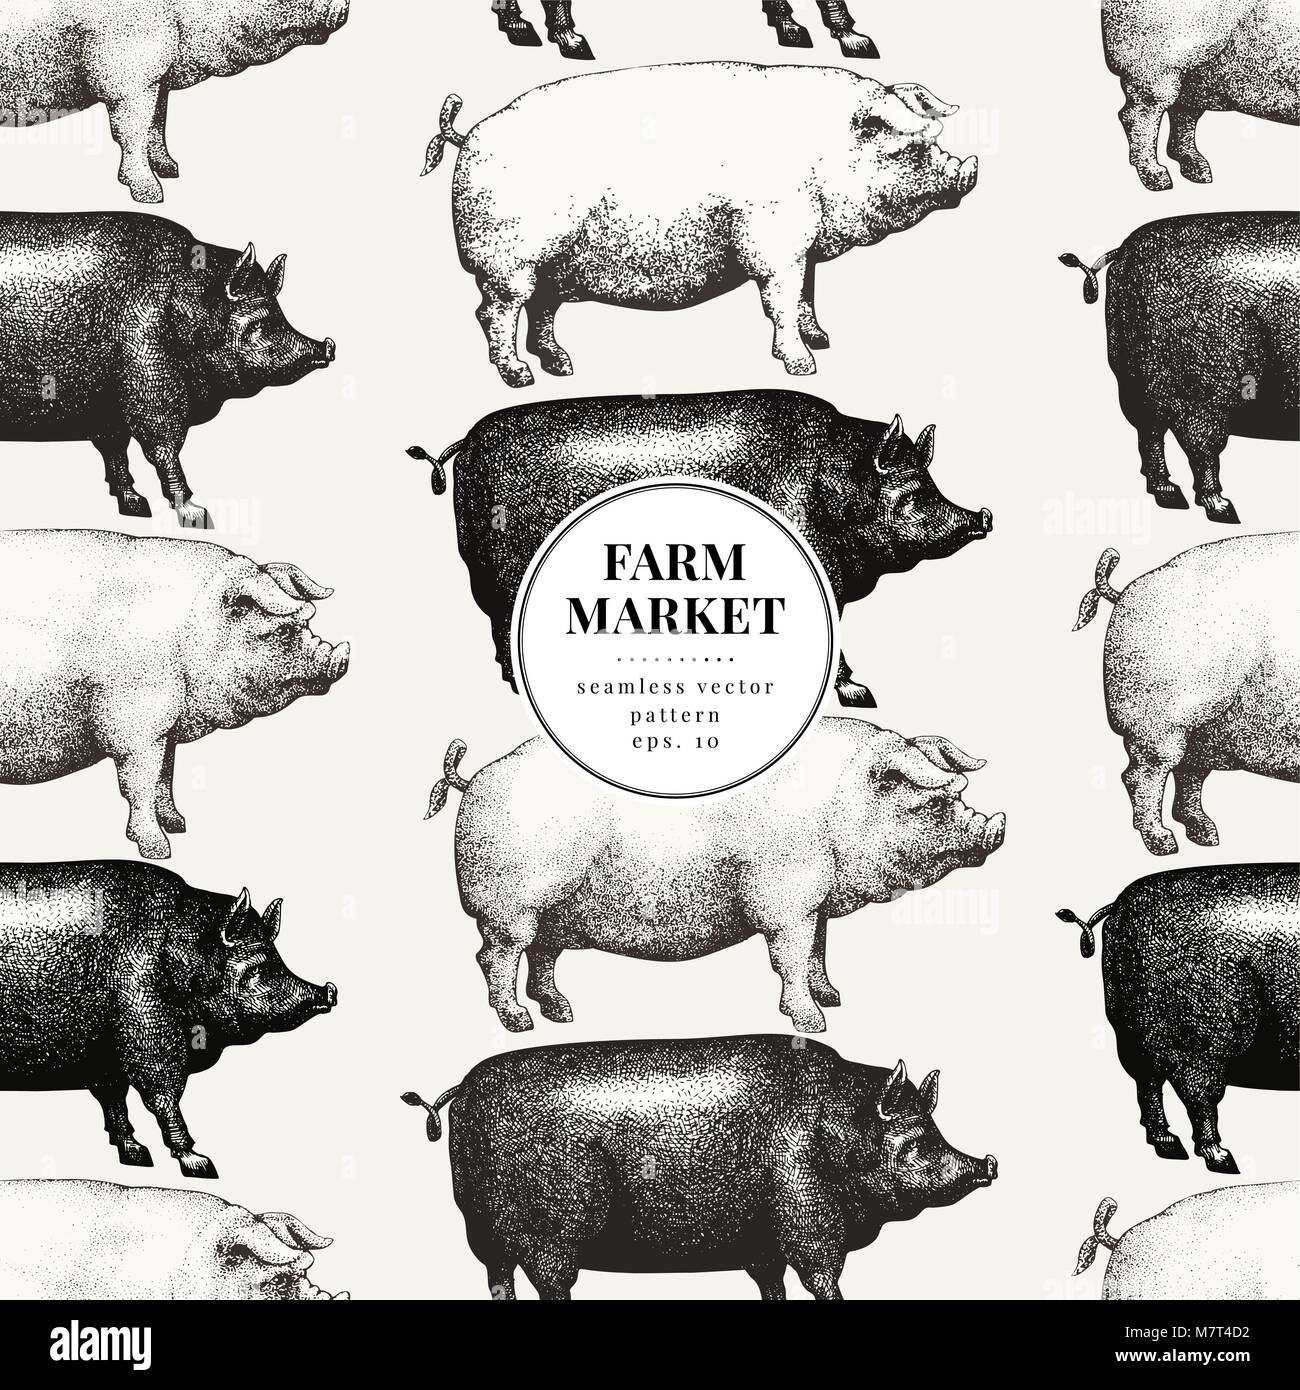 Seamless Farm Vector Pattern Graphical Pig Silhouette Hand Drawn Retro Illustrations Vintage Animals Background Banner Template